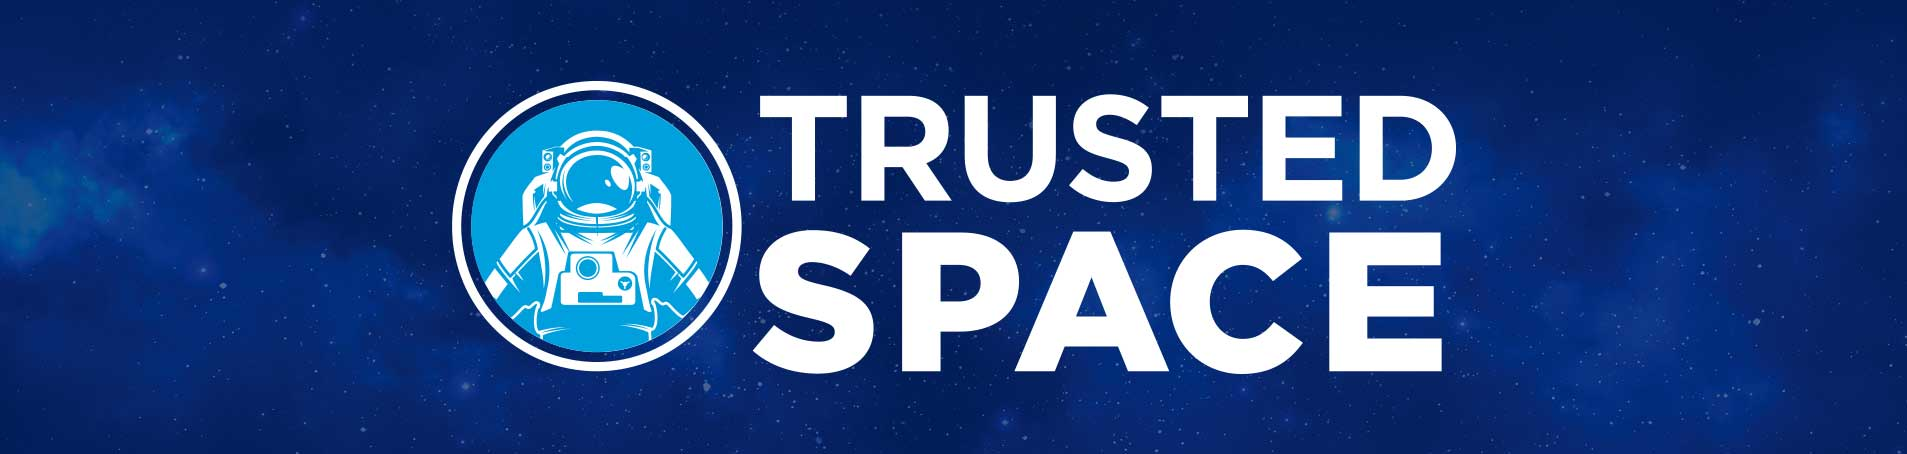 trusted-space-hero